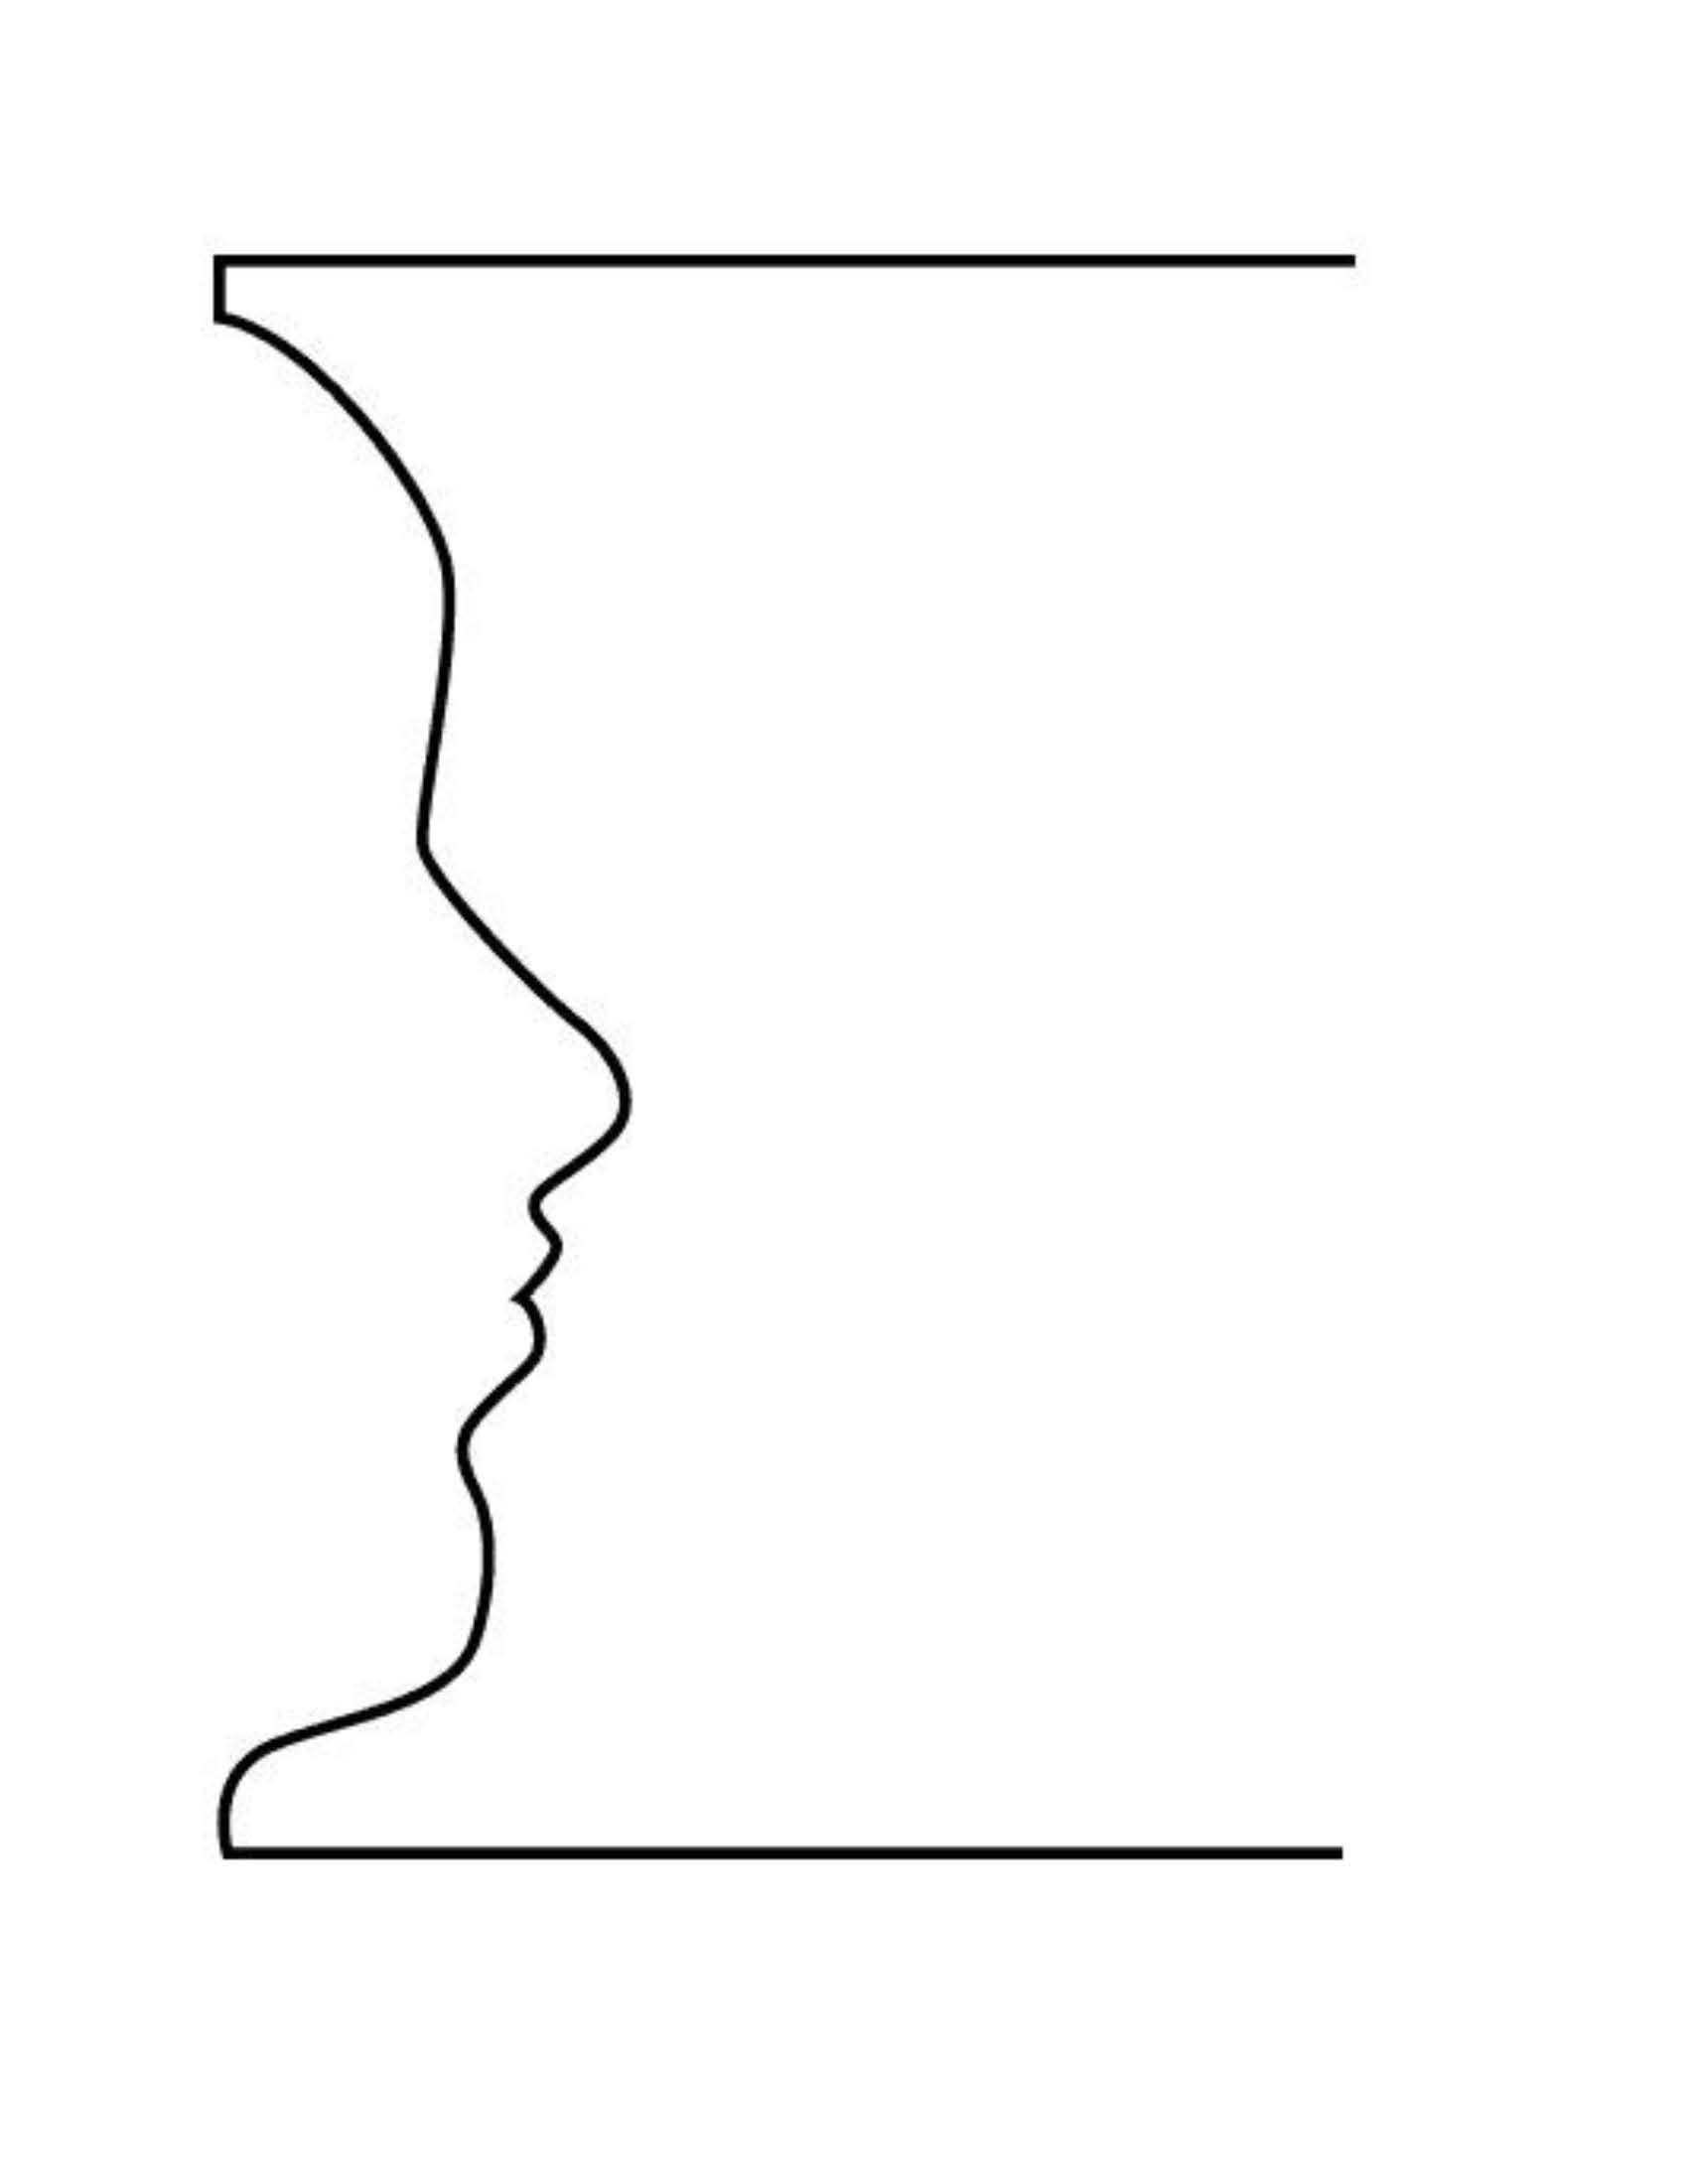 Try It  The Vase  Faces Exercise  U2014 Drawing On The Right